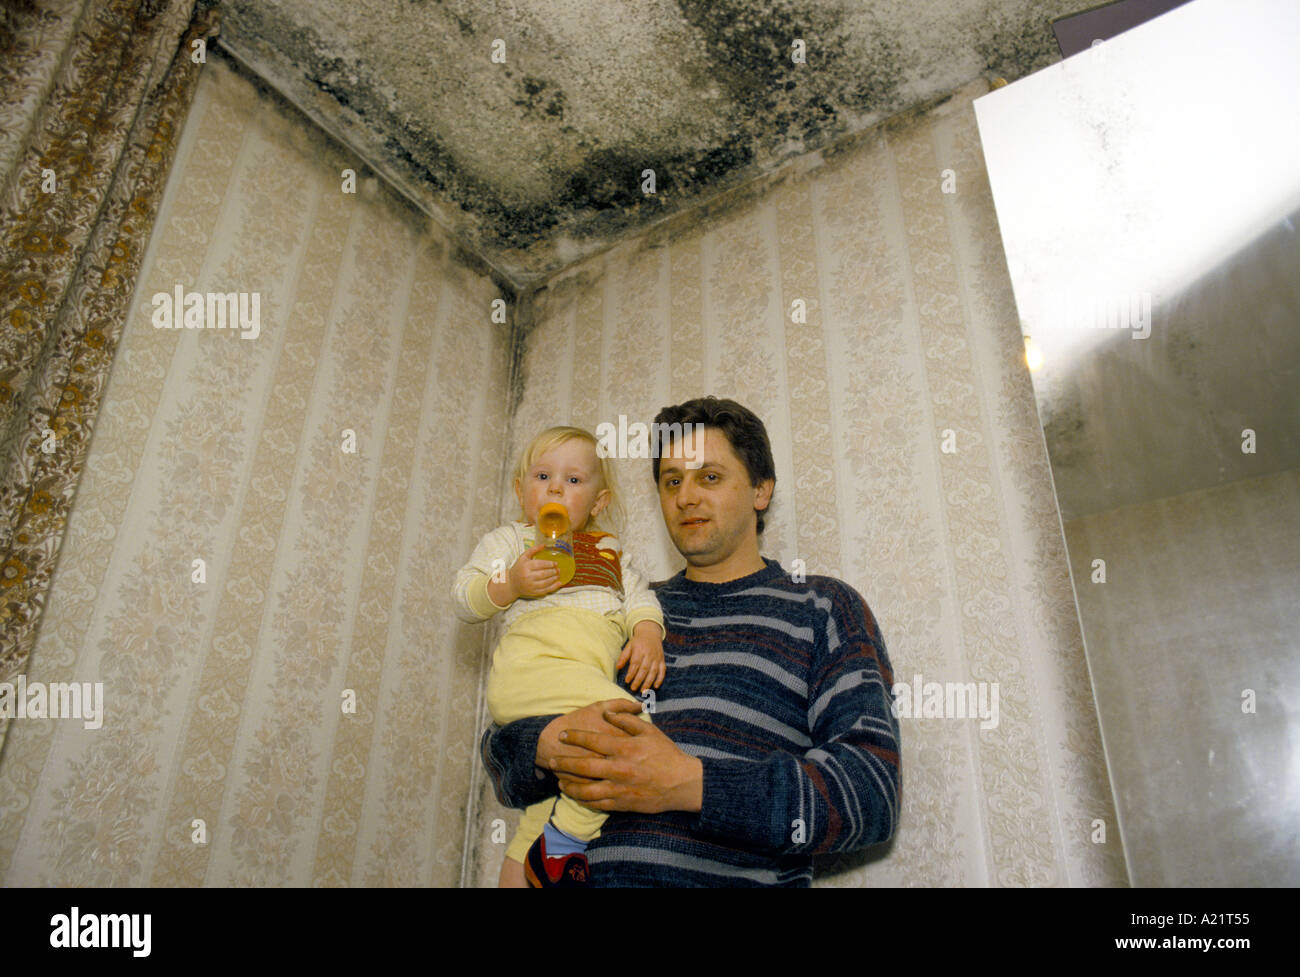 A father and his child forced to live in only  one room because of damp in all the other   rooms, Tower Hamlets, London, UK - Stock Image